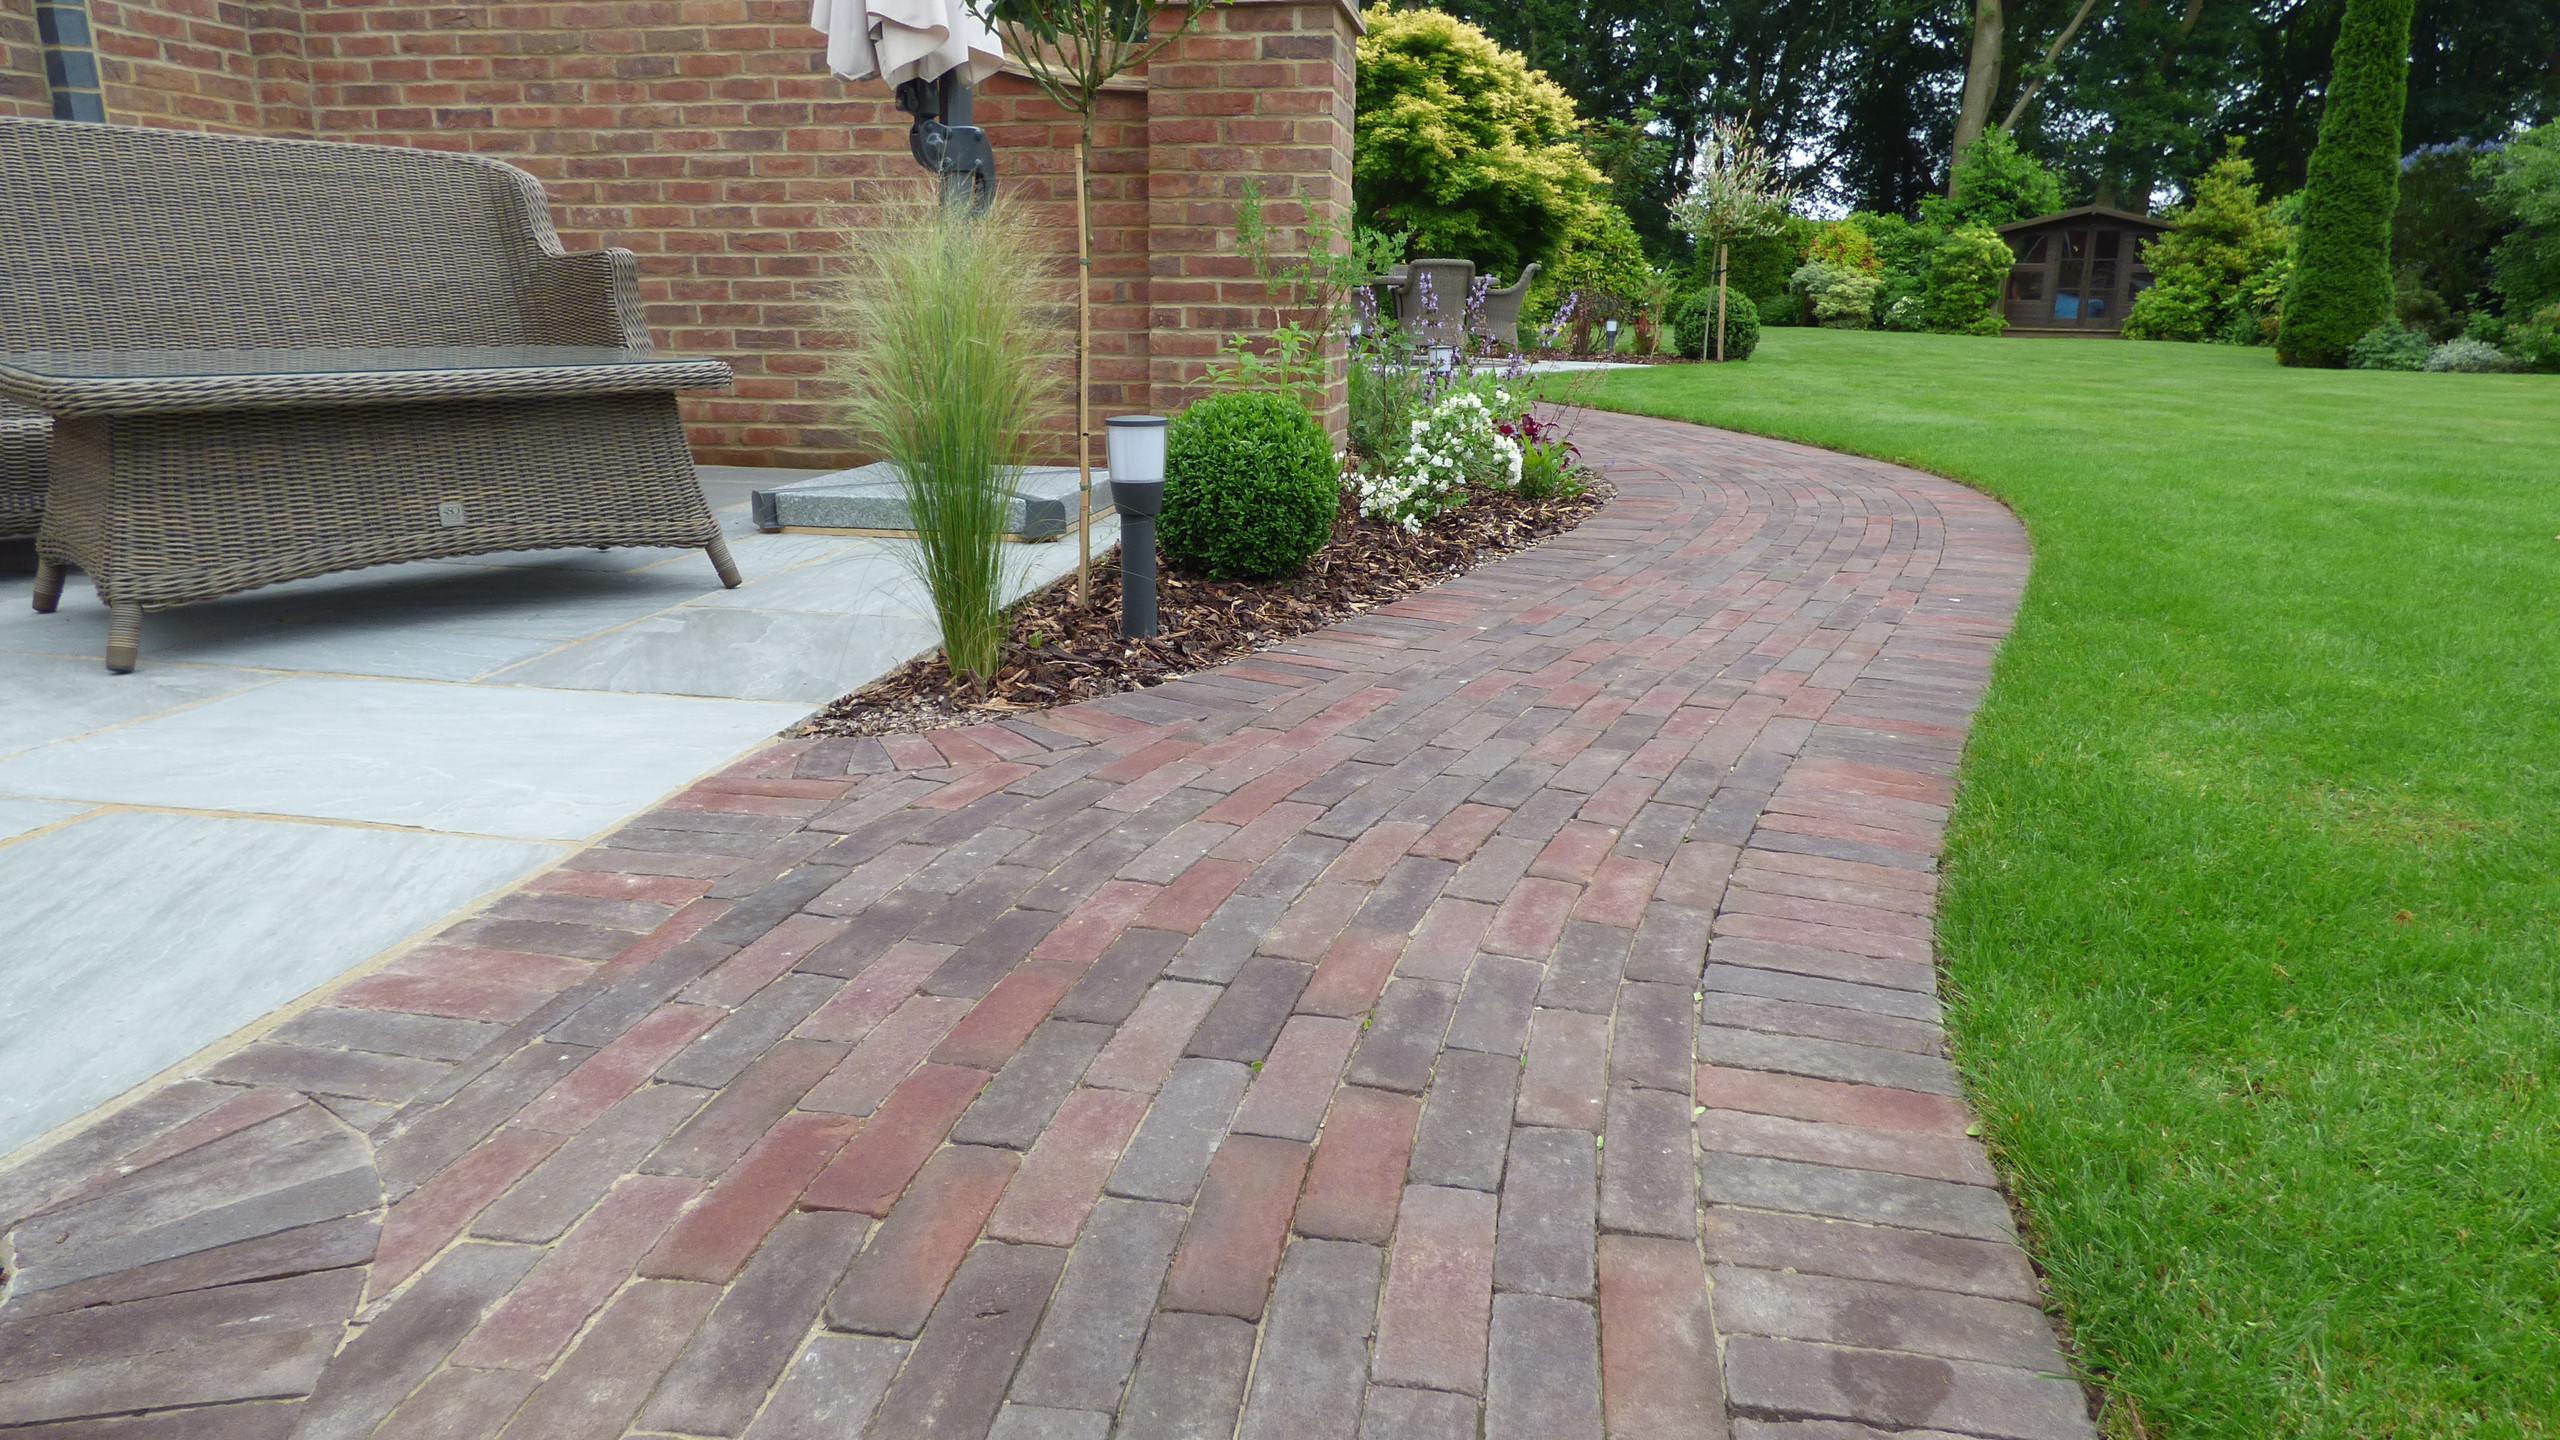 Belgium clay paving paths. And a Brett Mountain Mist Sandstone paving was used for the main patio/seating areas.